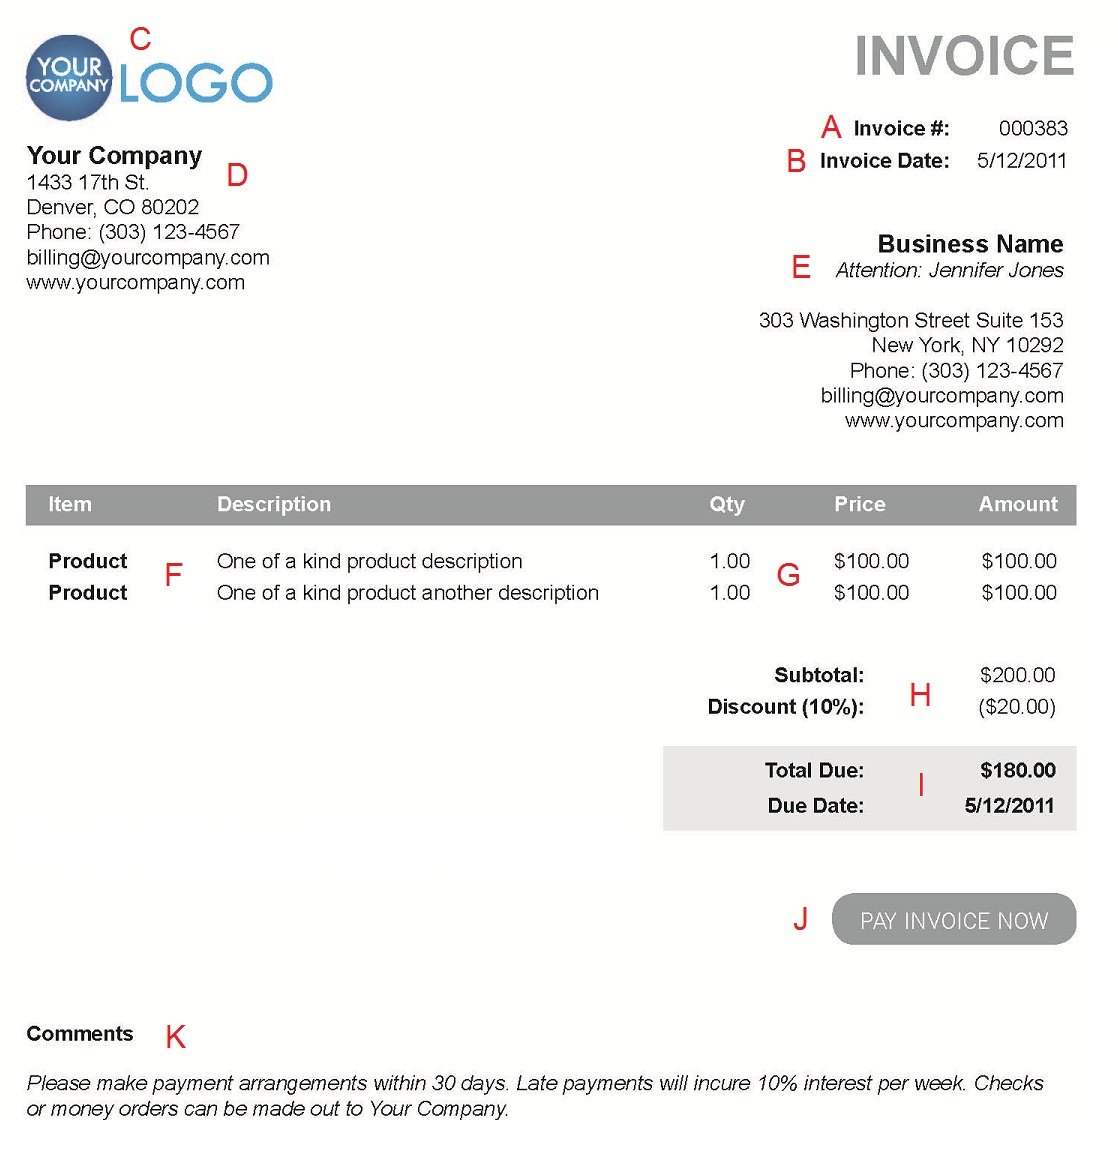 Usdgus  Marvellous The  Different Sections Of An Electronic Payment Invoice With Foxy A  With Cool Invoicing Online Also Define Invoicing In Addition Canada Commercial Invoice And Invoice Loans As Well As Invoice Template Psd Additionally Copy Of An Invoice From Paysimplecom With Usdgus  Foxy The  Different Sections Of An Electronic Payment Invoice With Cool A  And Marvellous Invoicing Online Also Define Invoicing In Addition Canada Commercial Invoice From Paysimplecom